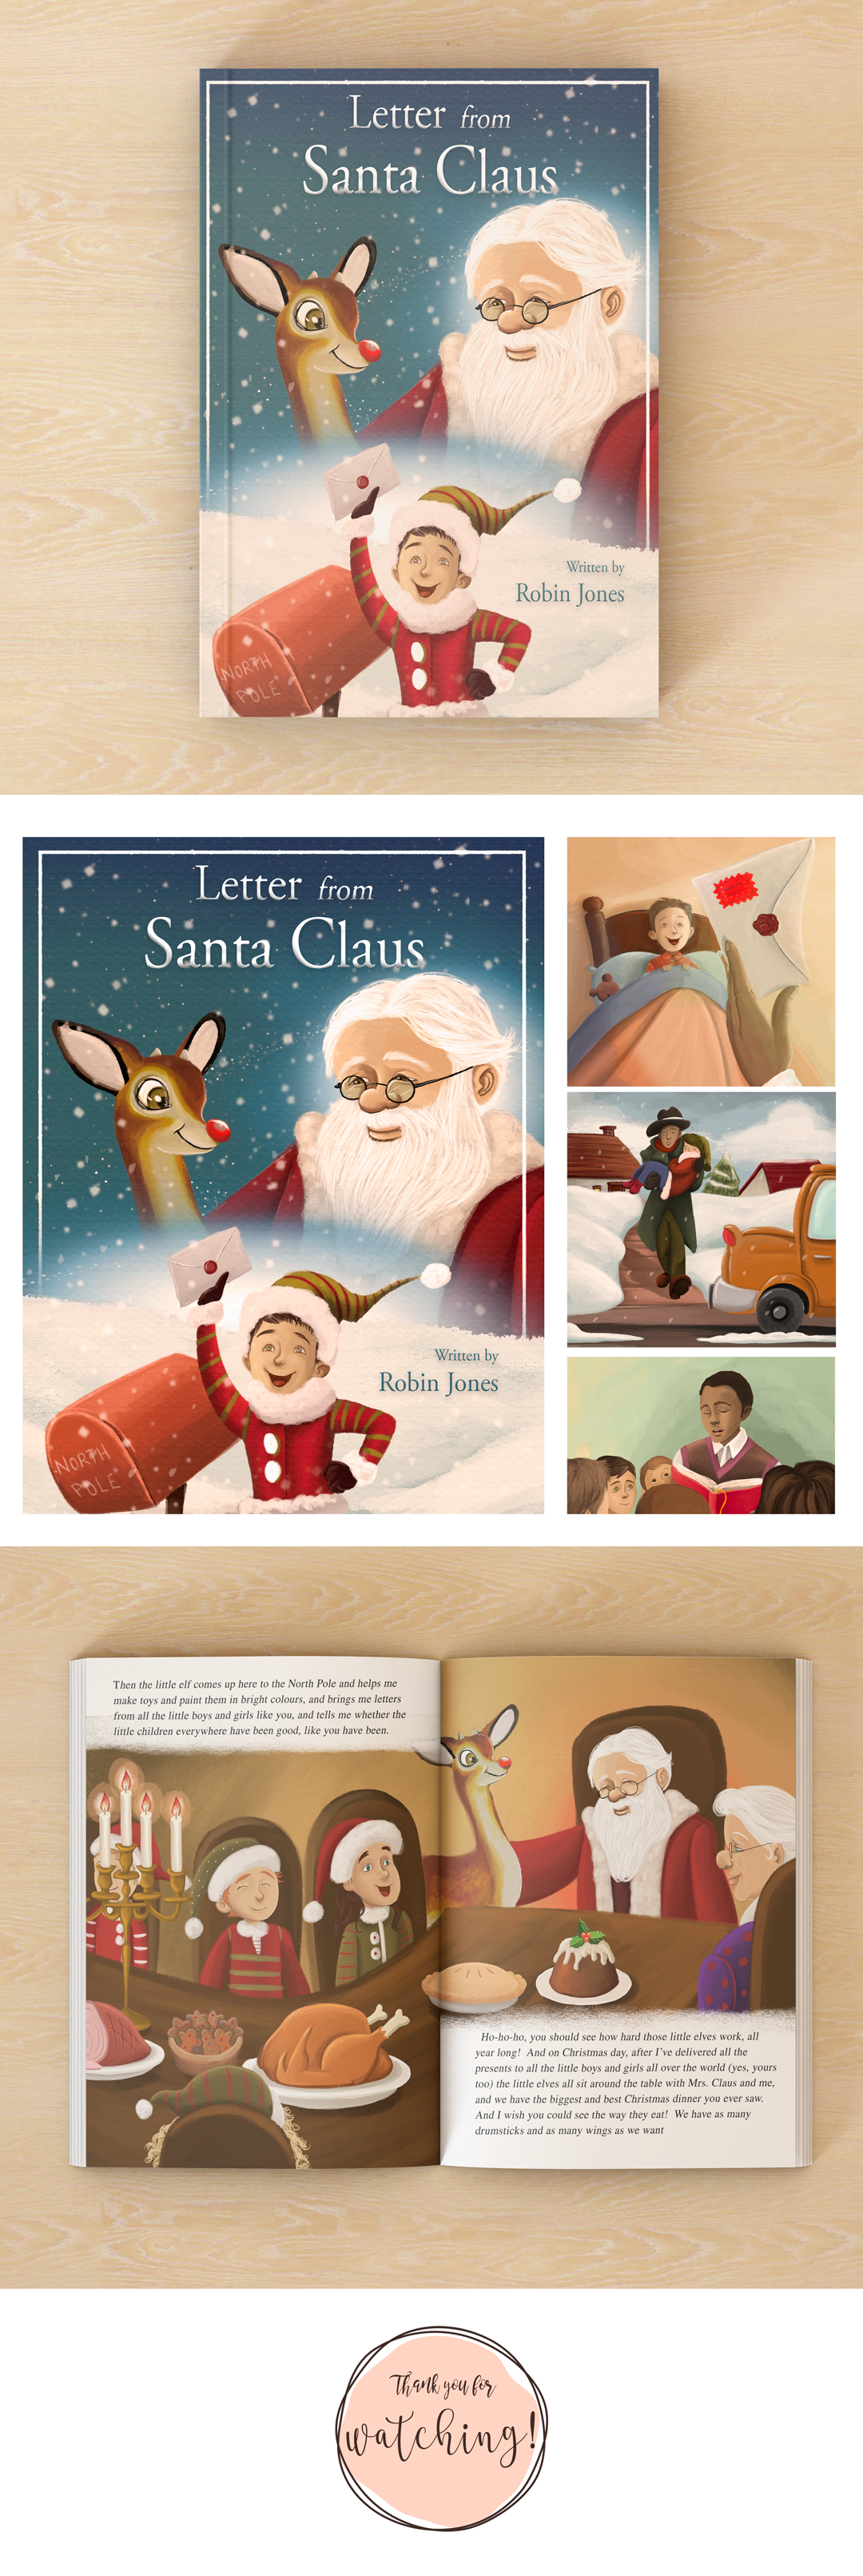 Mar Fandos  Letter From Santa Claus  Children Book Illustrations